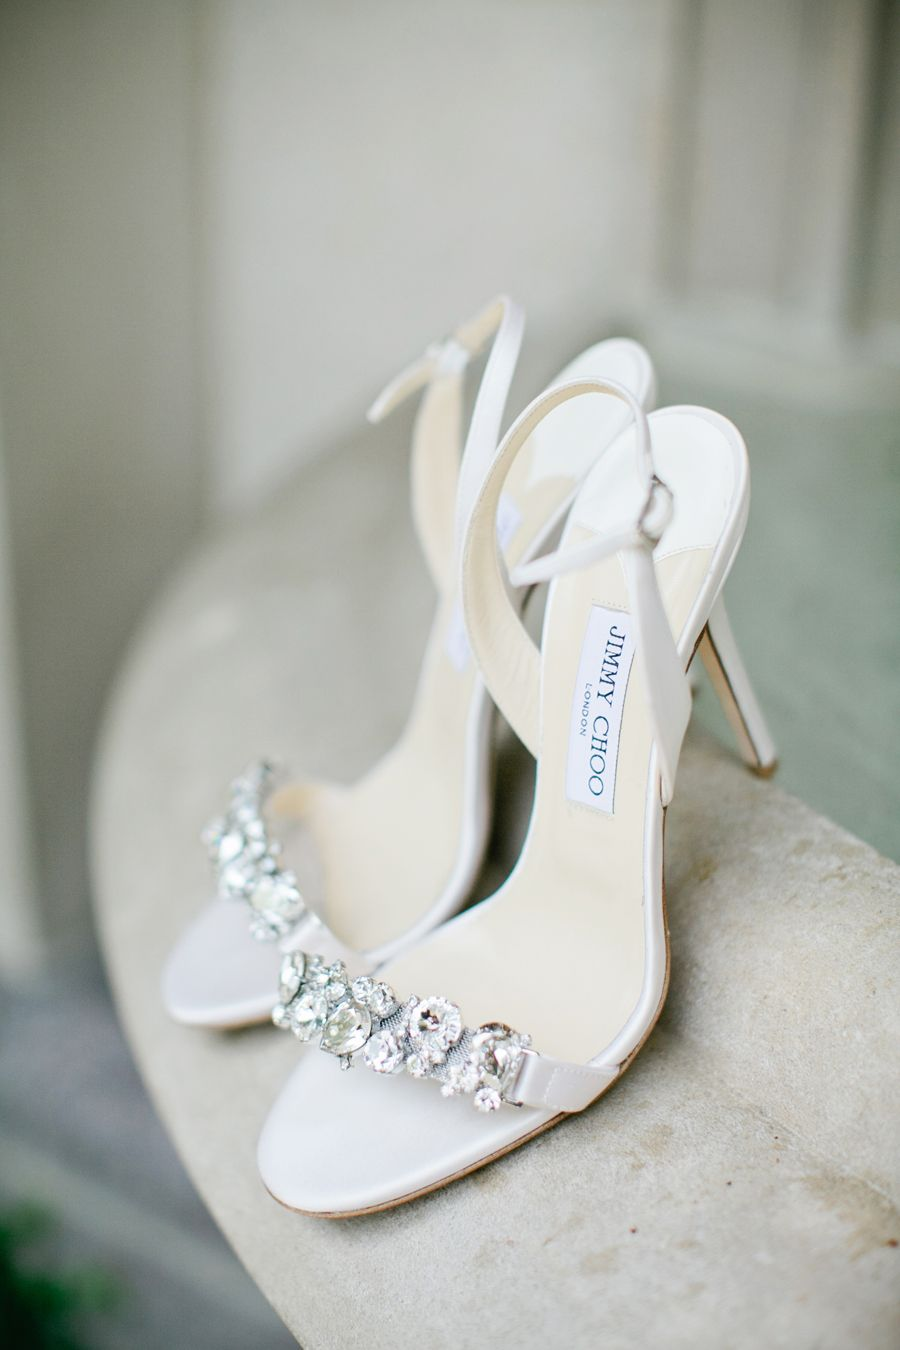 Strappy Couture Bridal Shoes | photography by http://www.kristynhogan.com